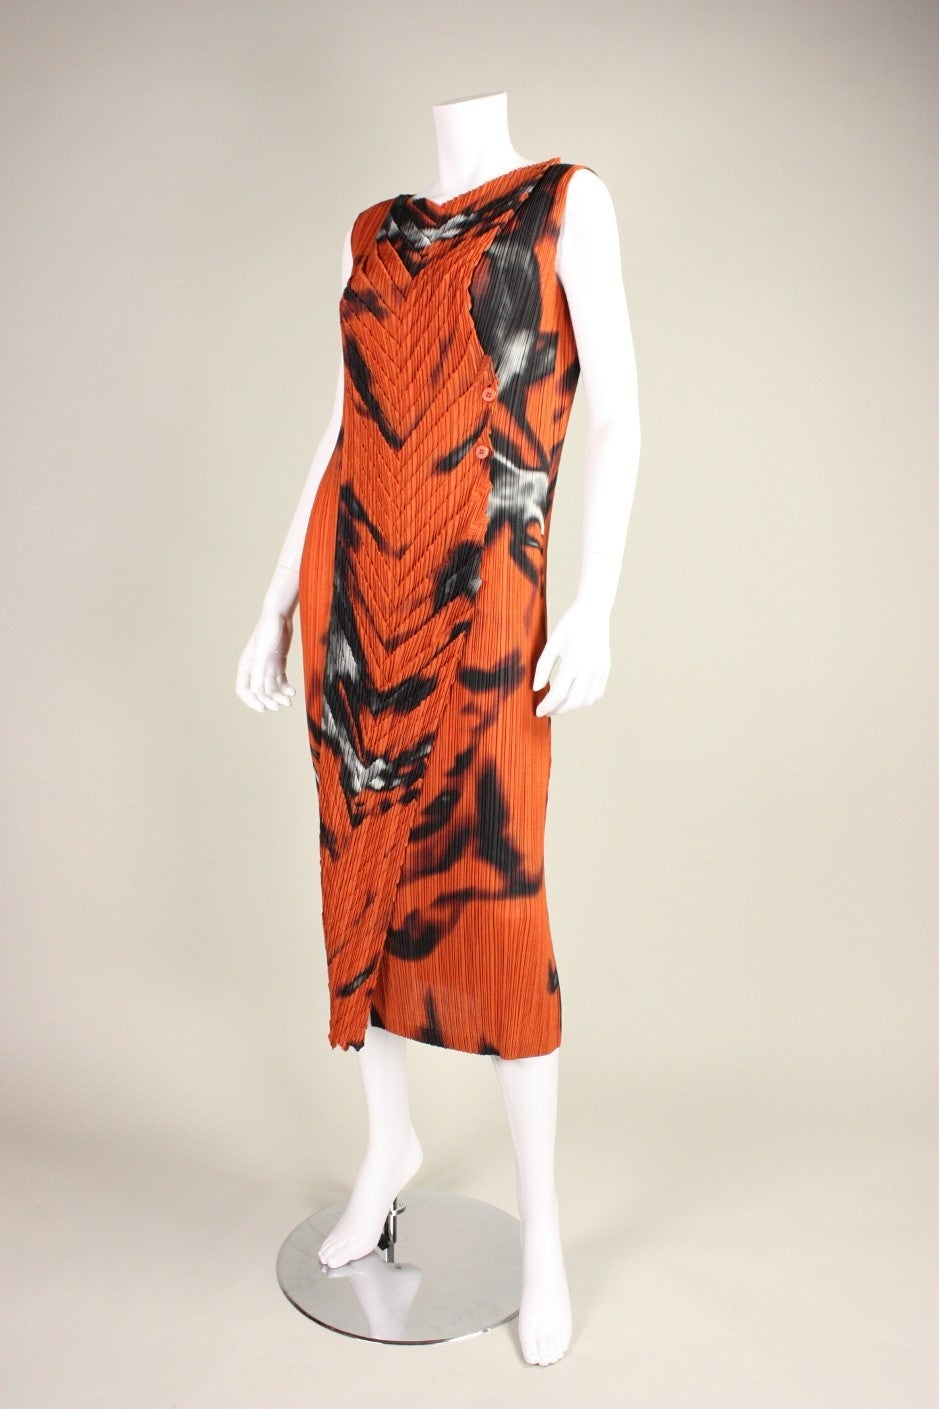 Striking dress from Issey Miyake's Fete line is made of orange fabric that is permanently pleated with an almost ghostly abstract print in black and white.  Contrasting pleats in a chevron pattern run vertically down the center front.  Side button